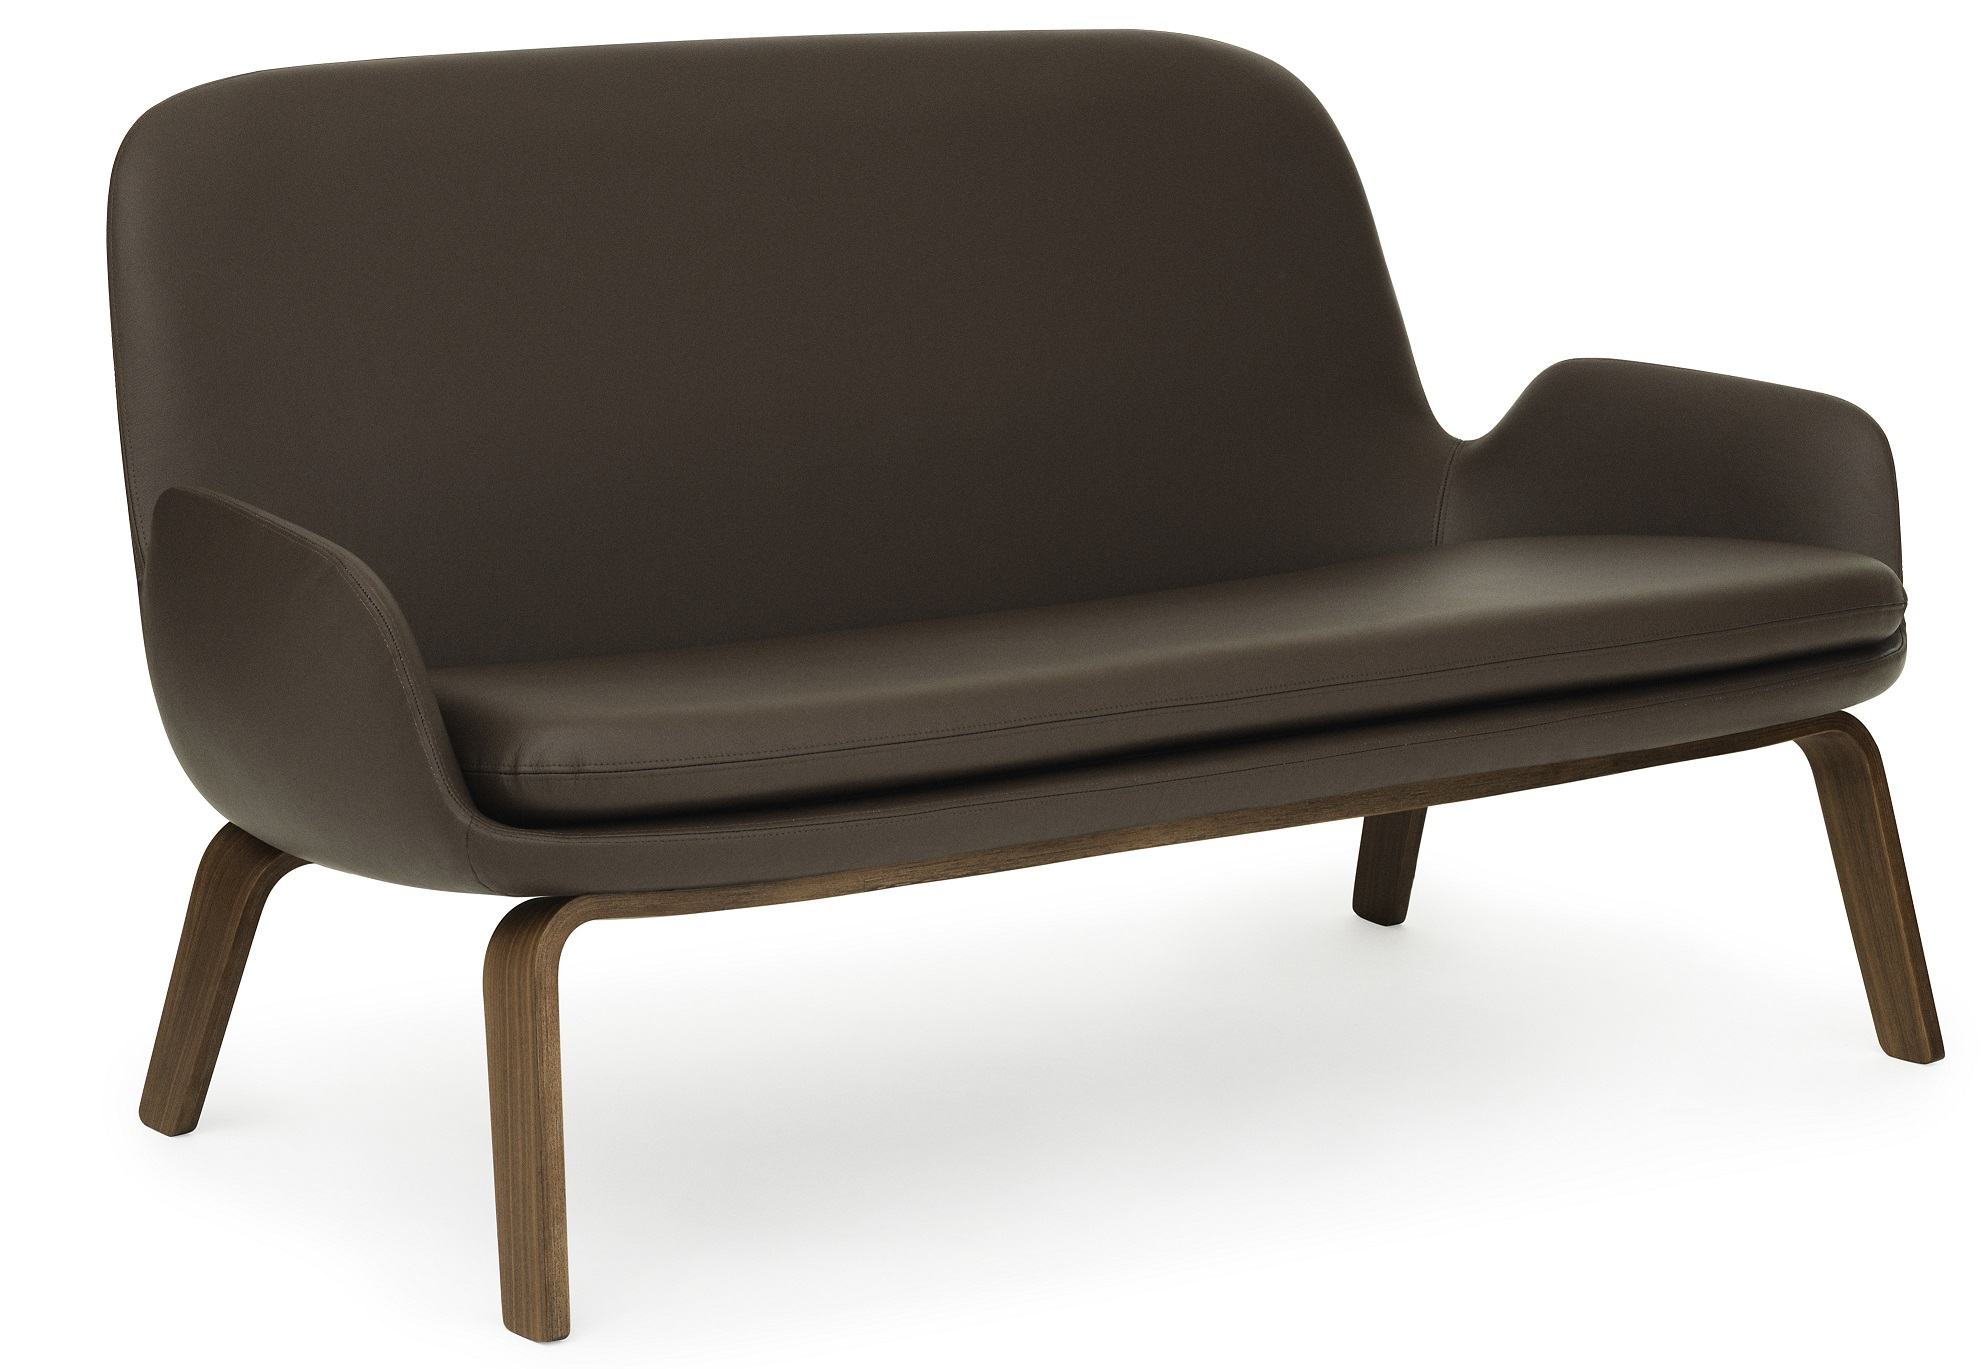 Era sofa walnut